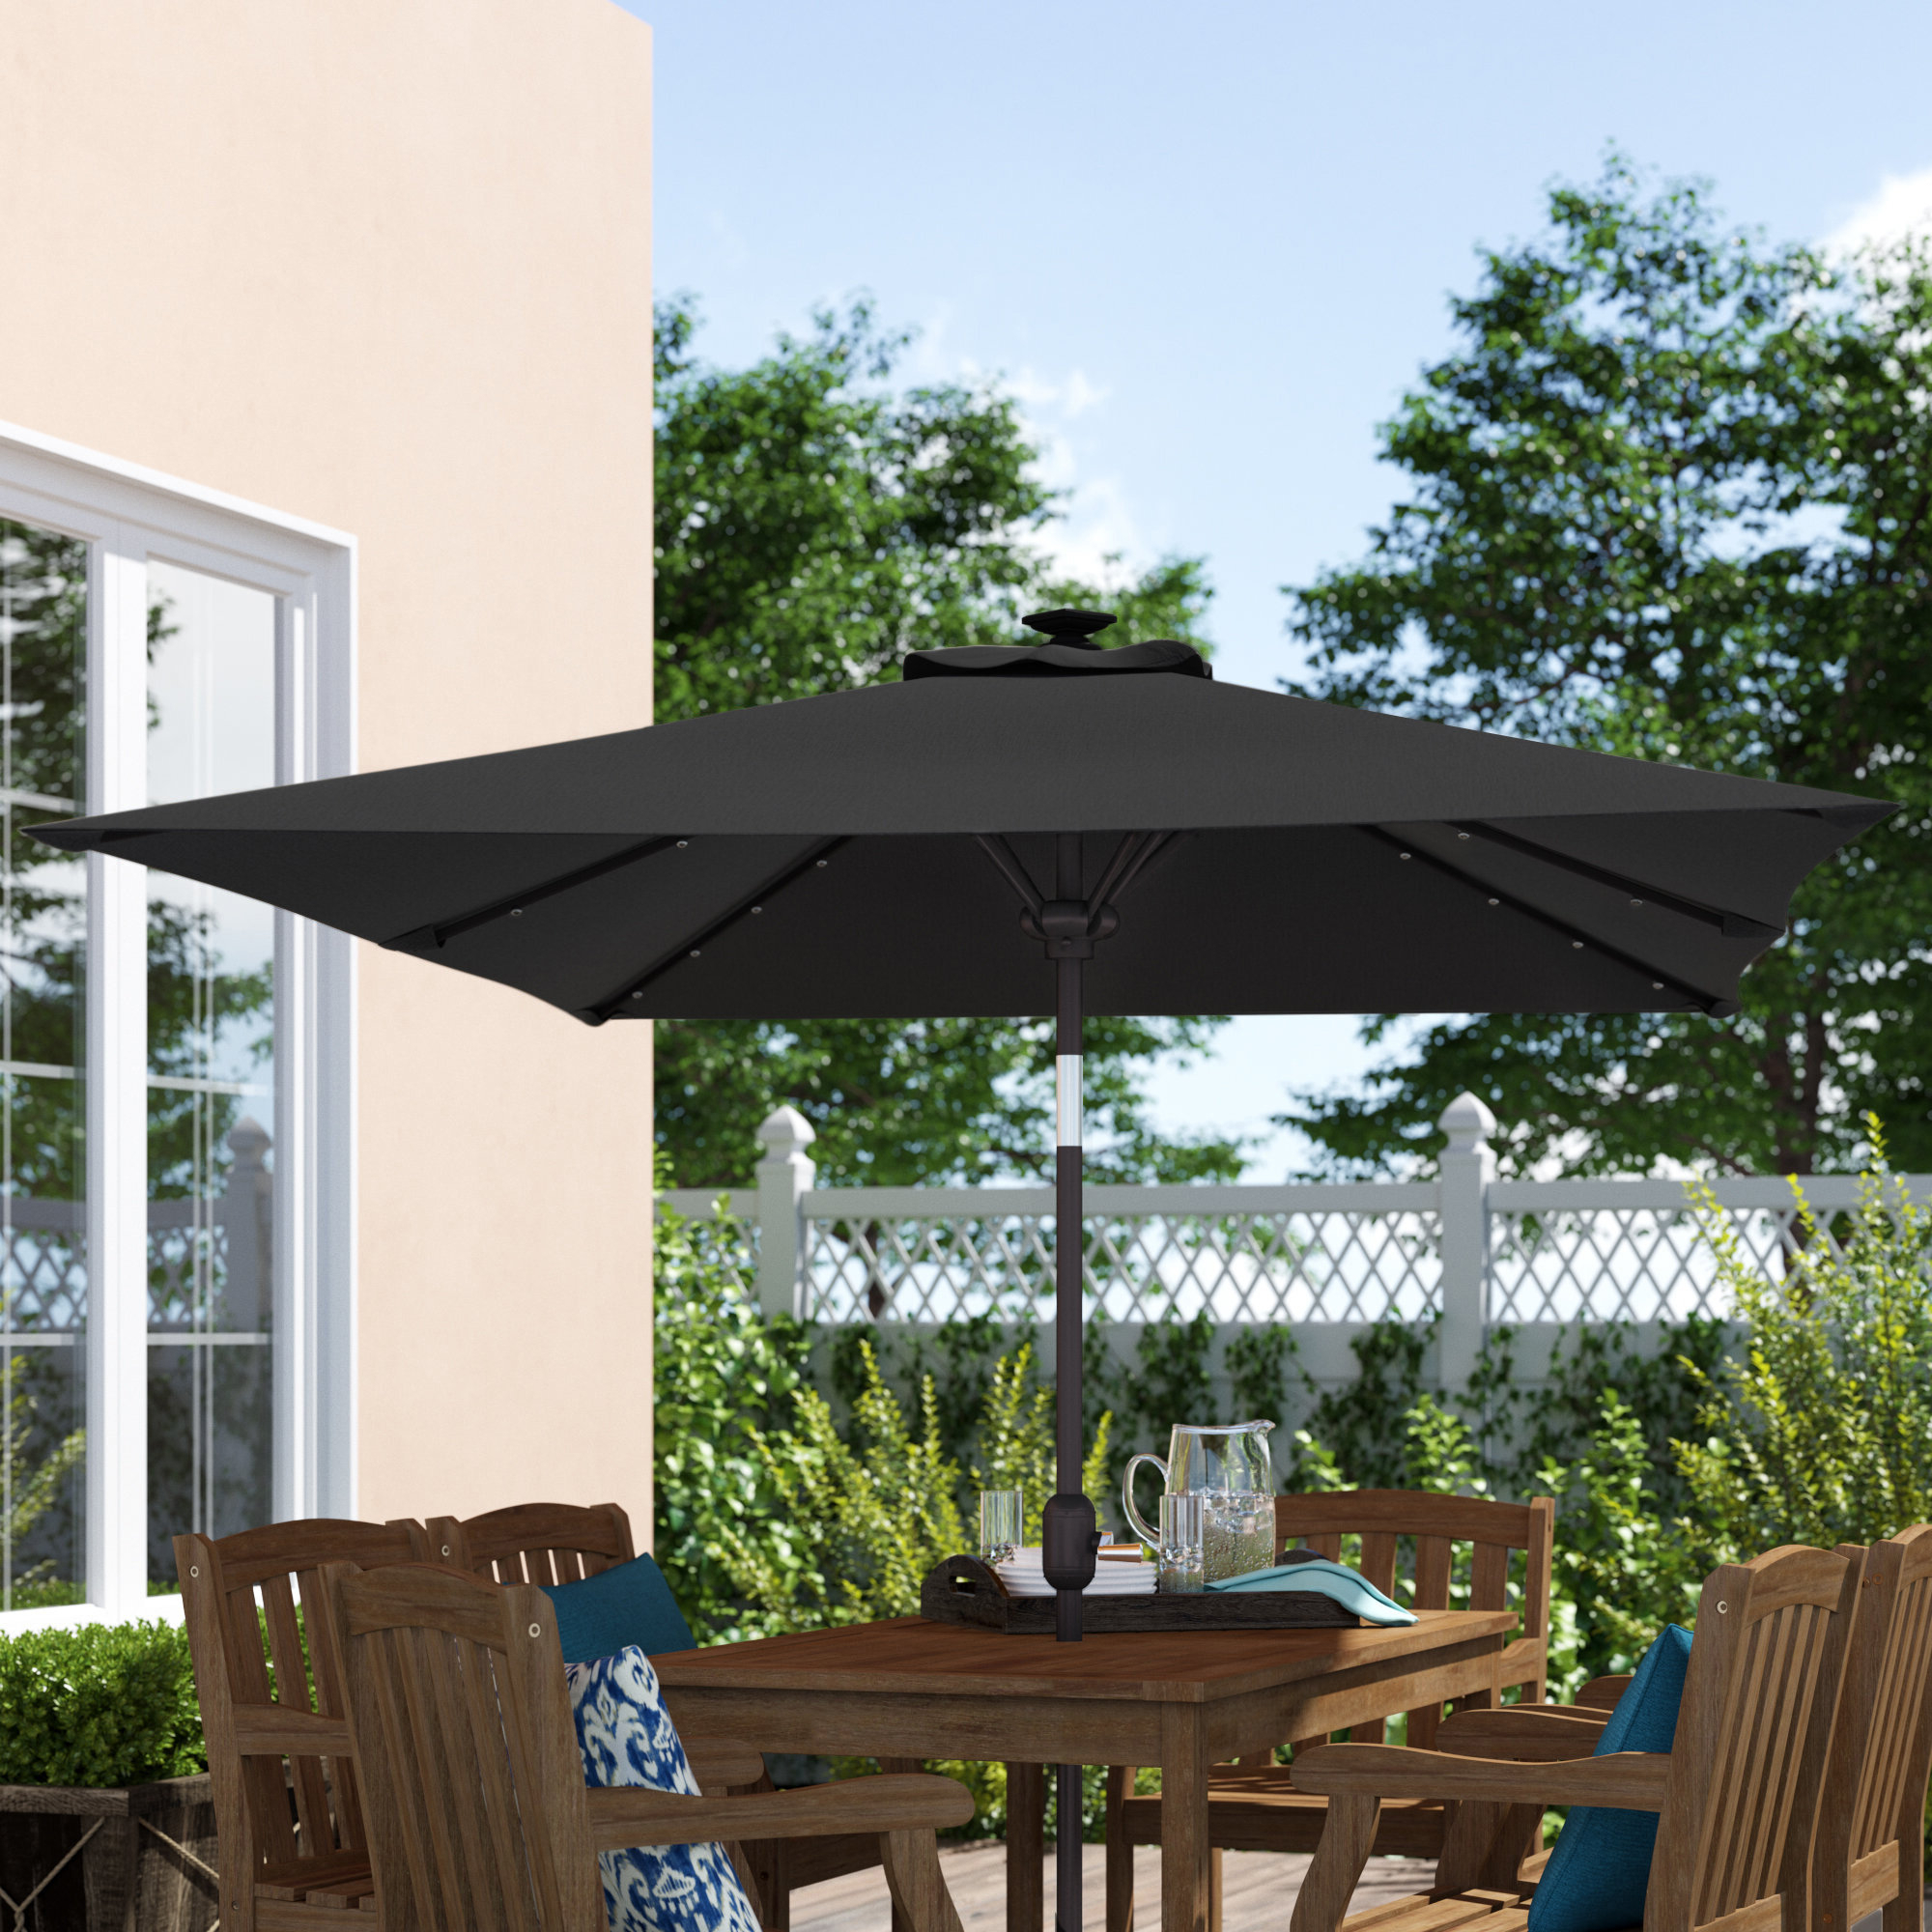 "Most Recent Eliana Solar Lighted Sunshade Tilt Crank 10' X 6'6"" Rectangular Market  Umbrella With Northfleet Rectangular Market Umbrellas (View 9 of 20)"